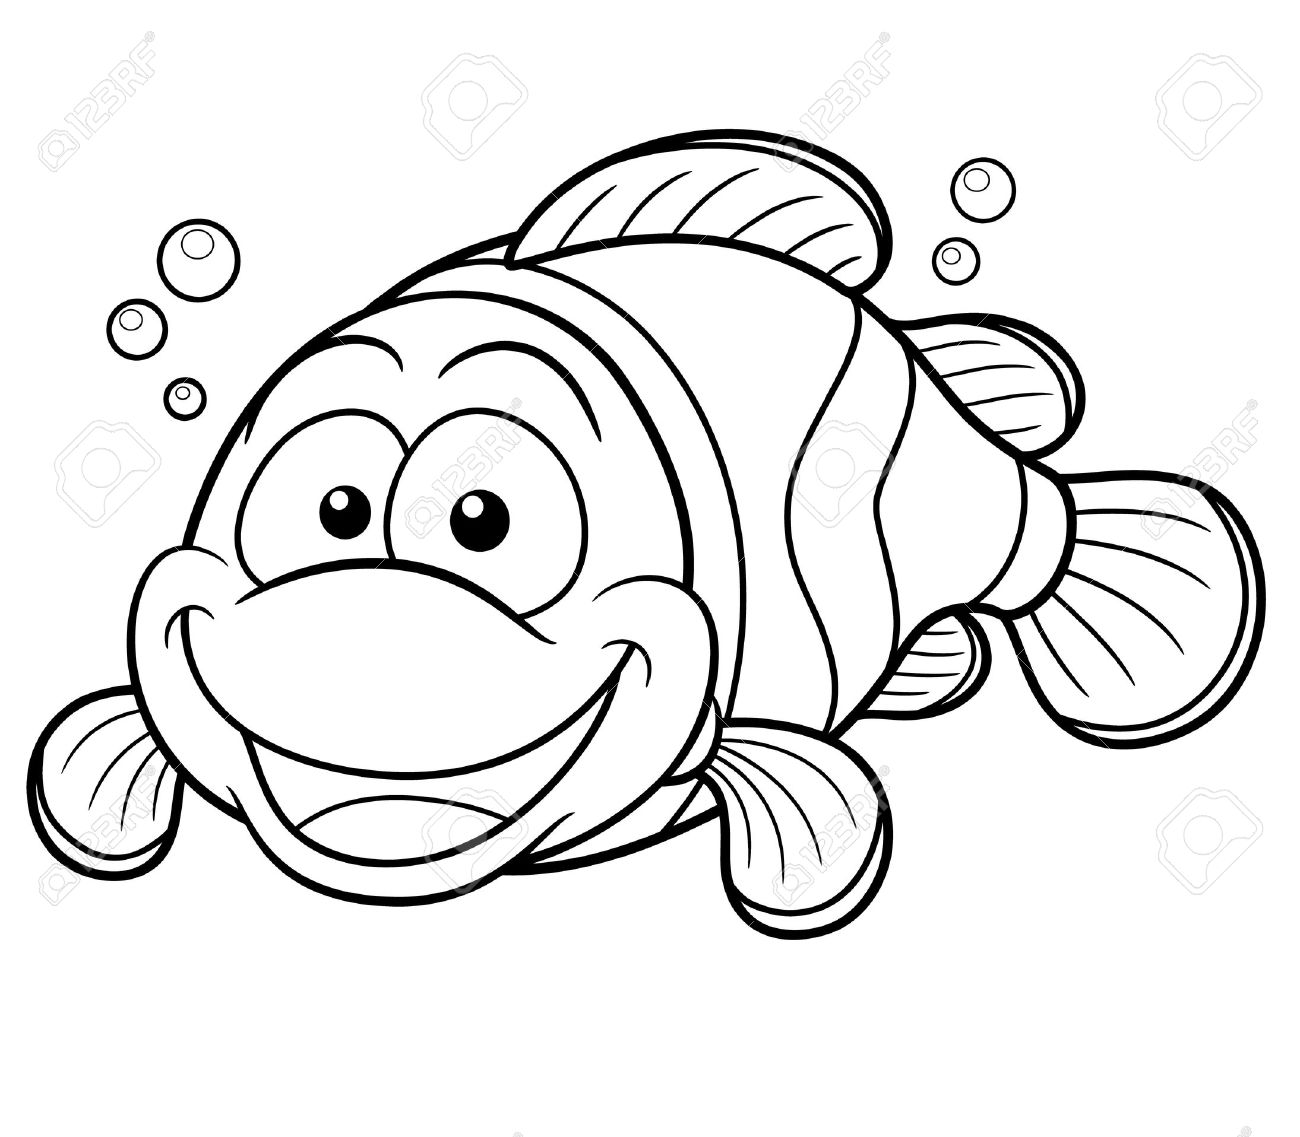 Coloring book outlines - Vector Illustration Of Happy Clownfish Cartoon Coloring Book Stock Vector 18726563